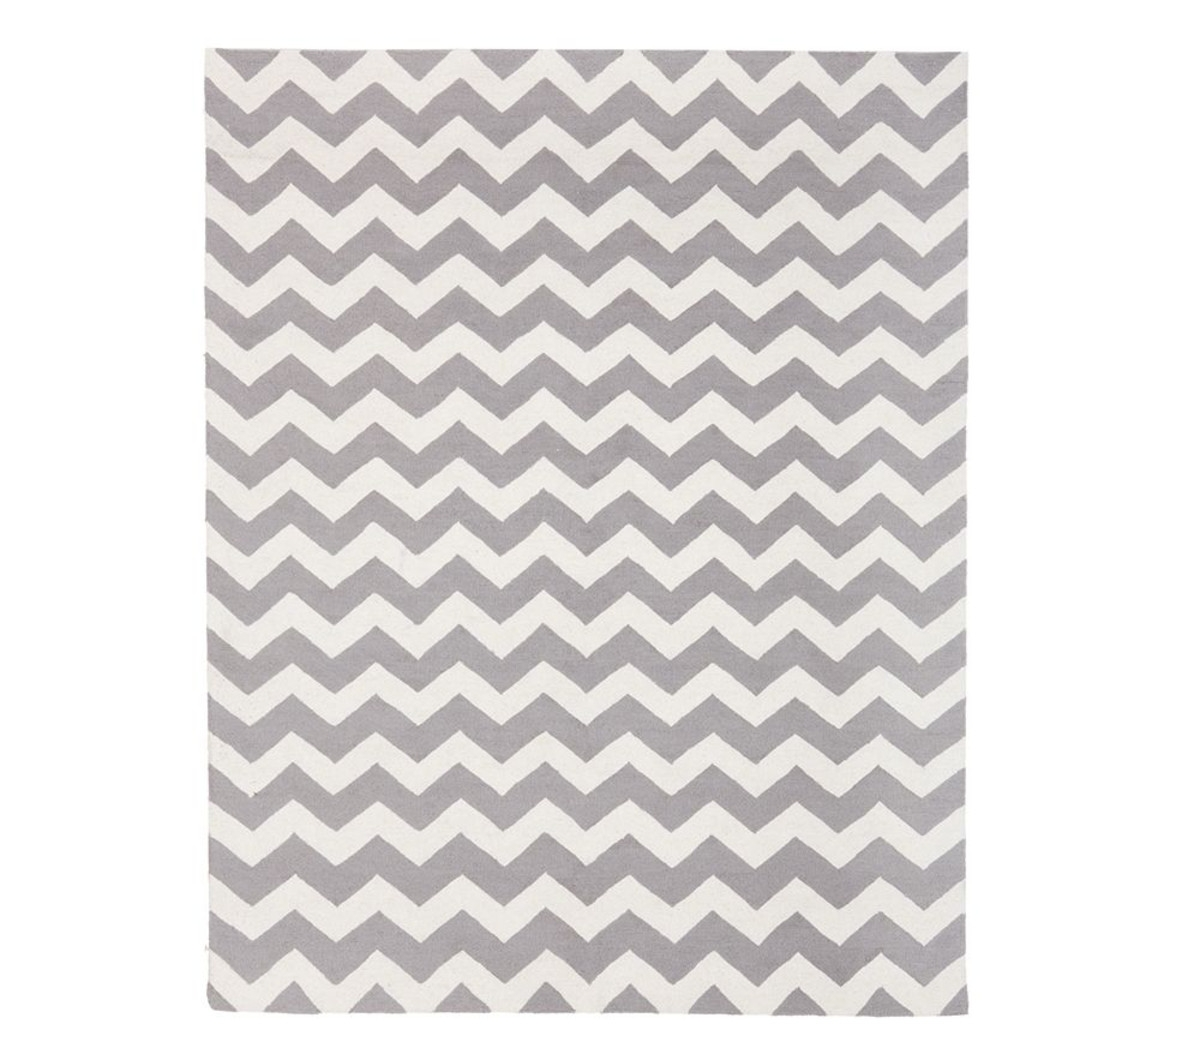 Grey Chevron Rugs Roselawnlutheran Inside Black And Grey Chevron Rugs (Image 11 of 15)